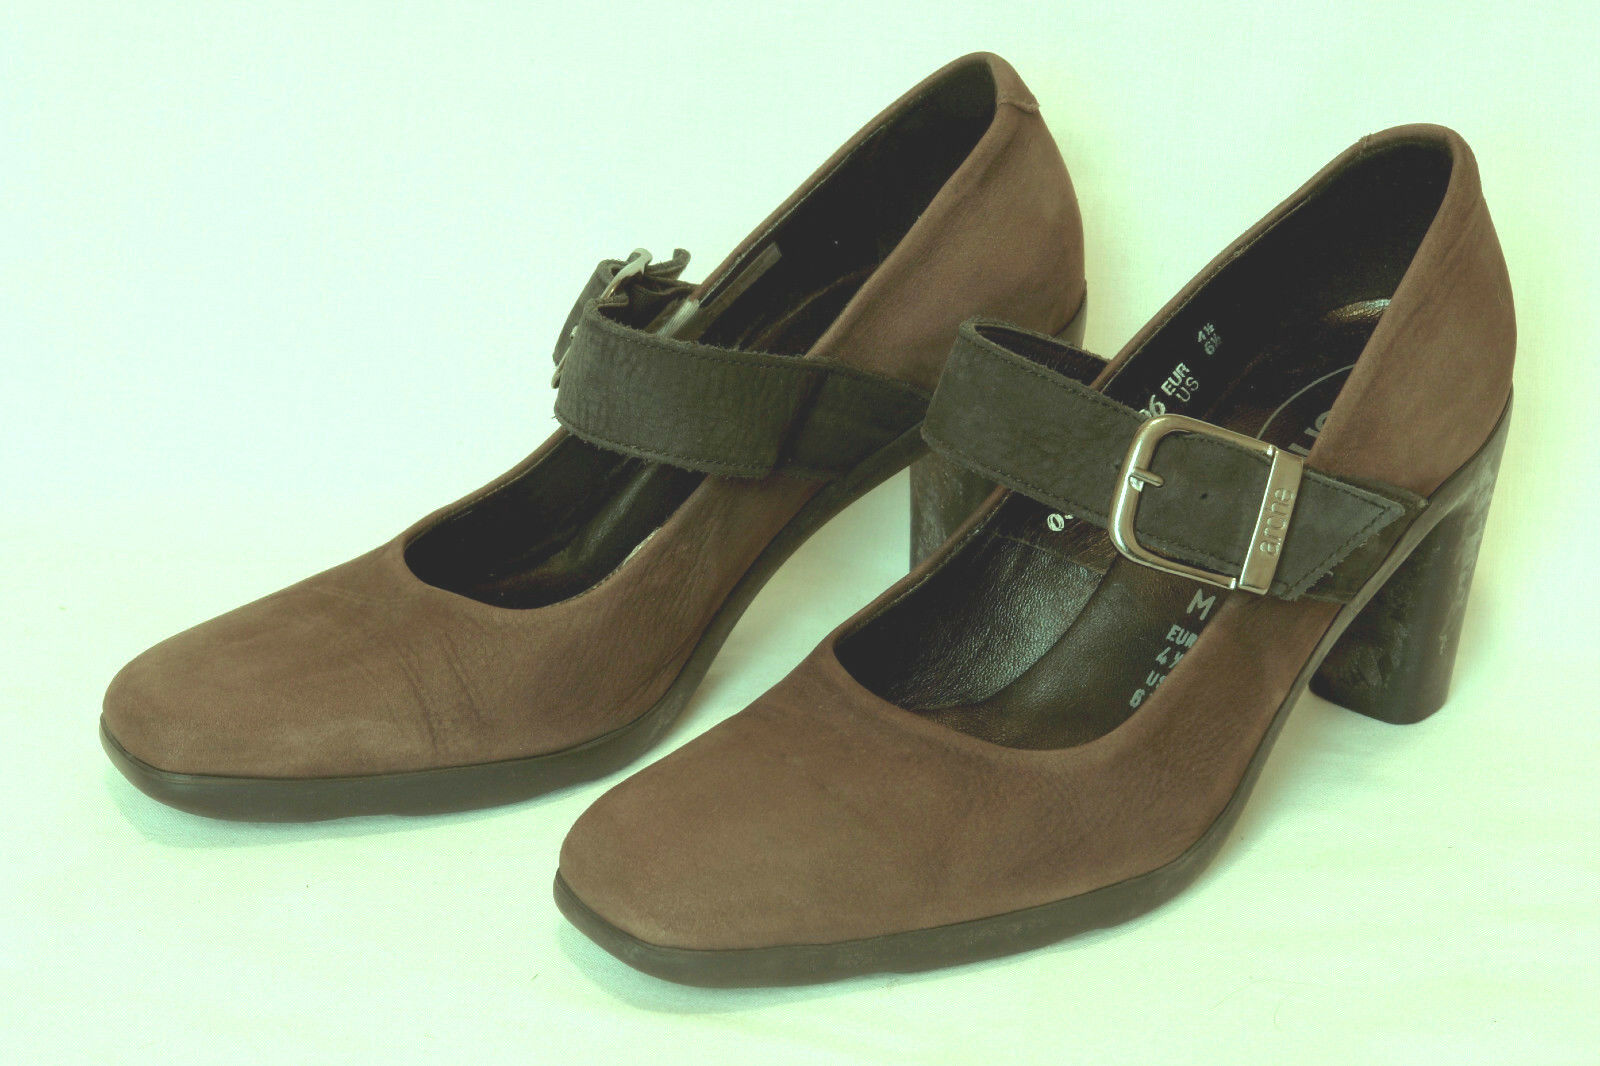 ARCHE  FRANCE  SEMI-SQUARE-TOE MARY JANE IN BROWN NUBUCK  SZ  6.5 EXCELLENT